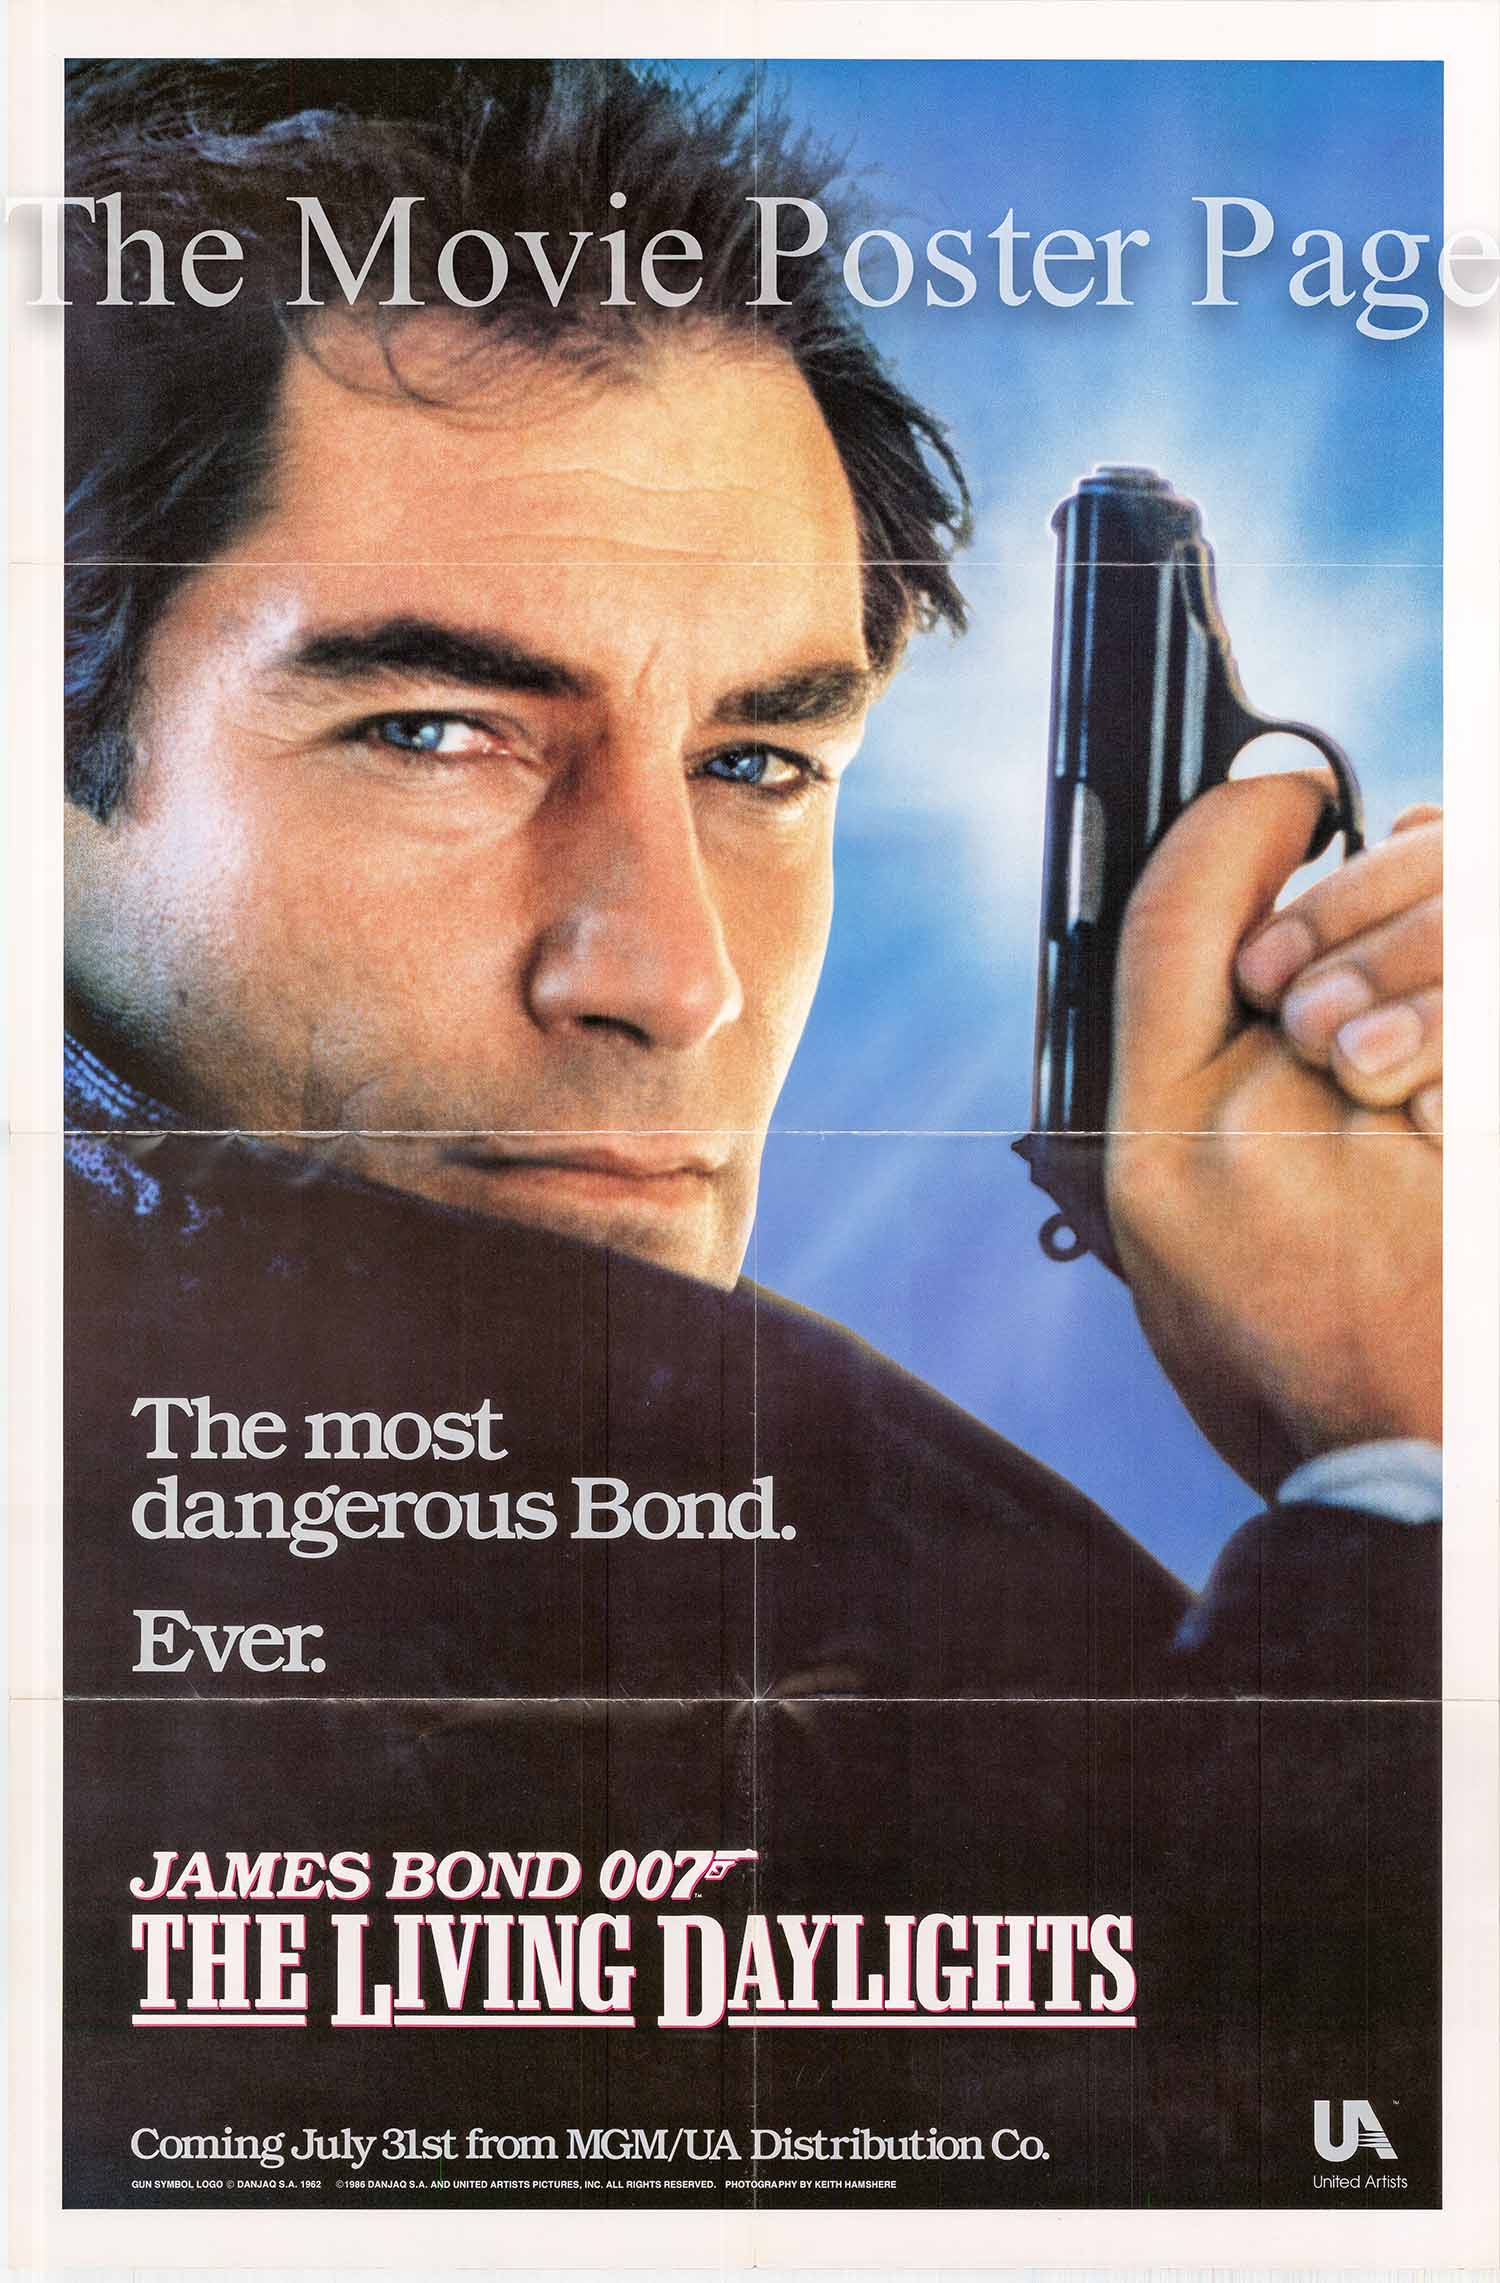 Pictured is an advance promotional one-sheet poster for the 1987 John Glen film The Living Daylights starring Timothy Dalton as James Bond.